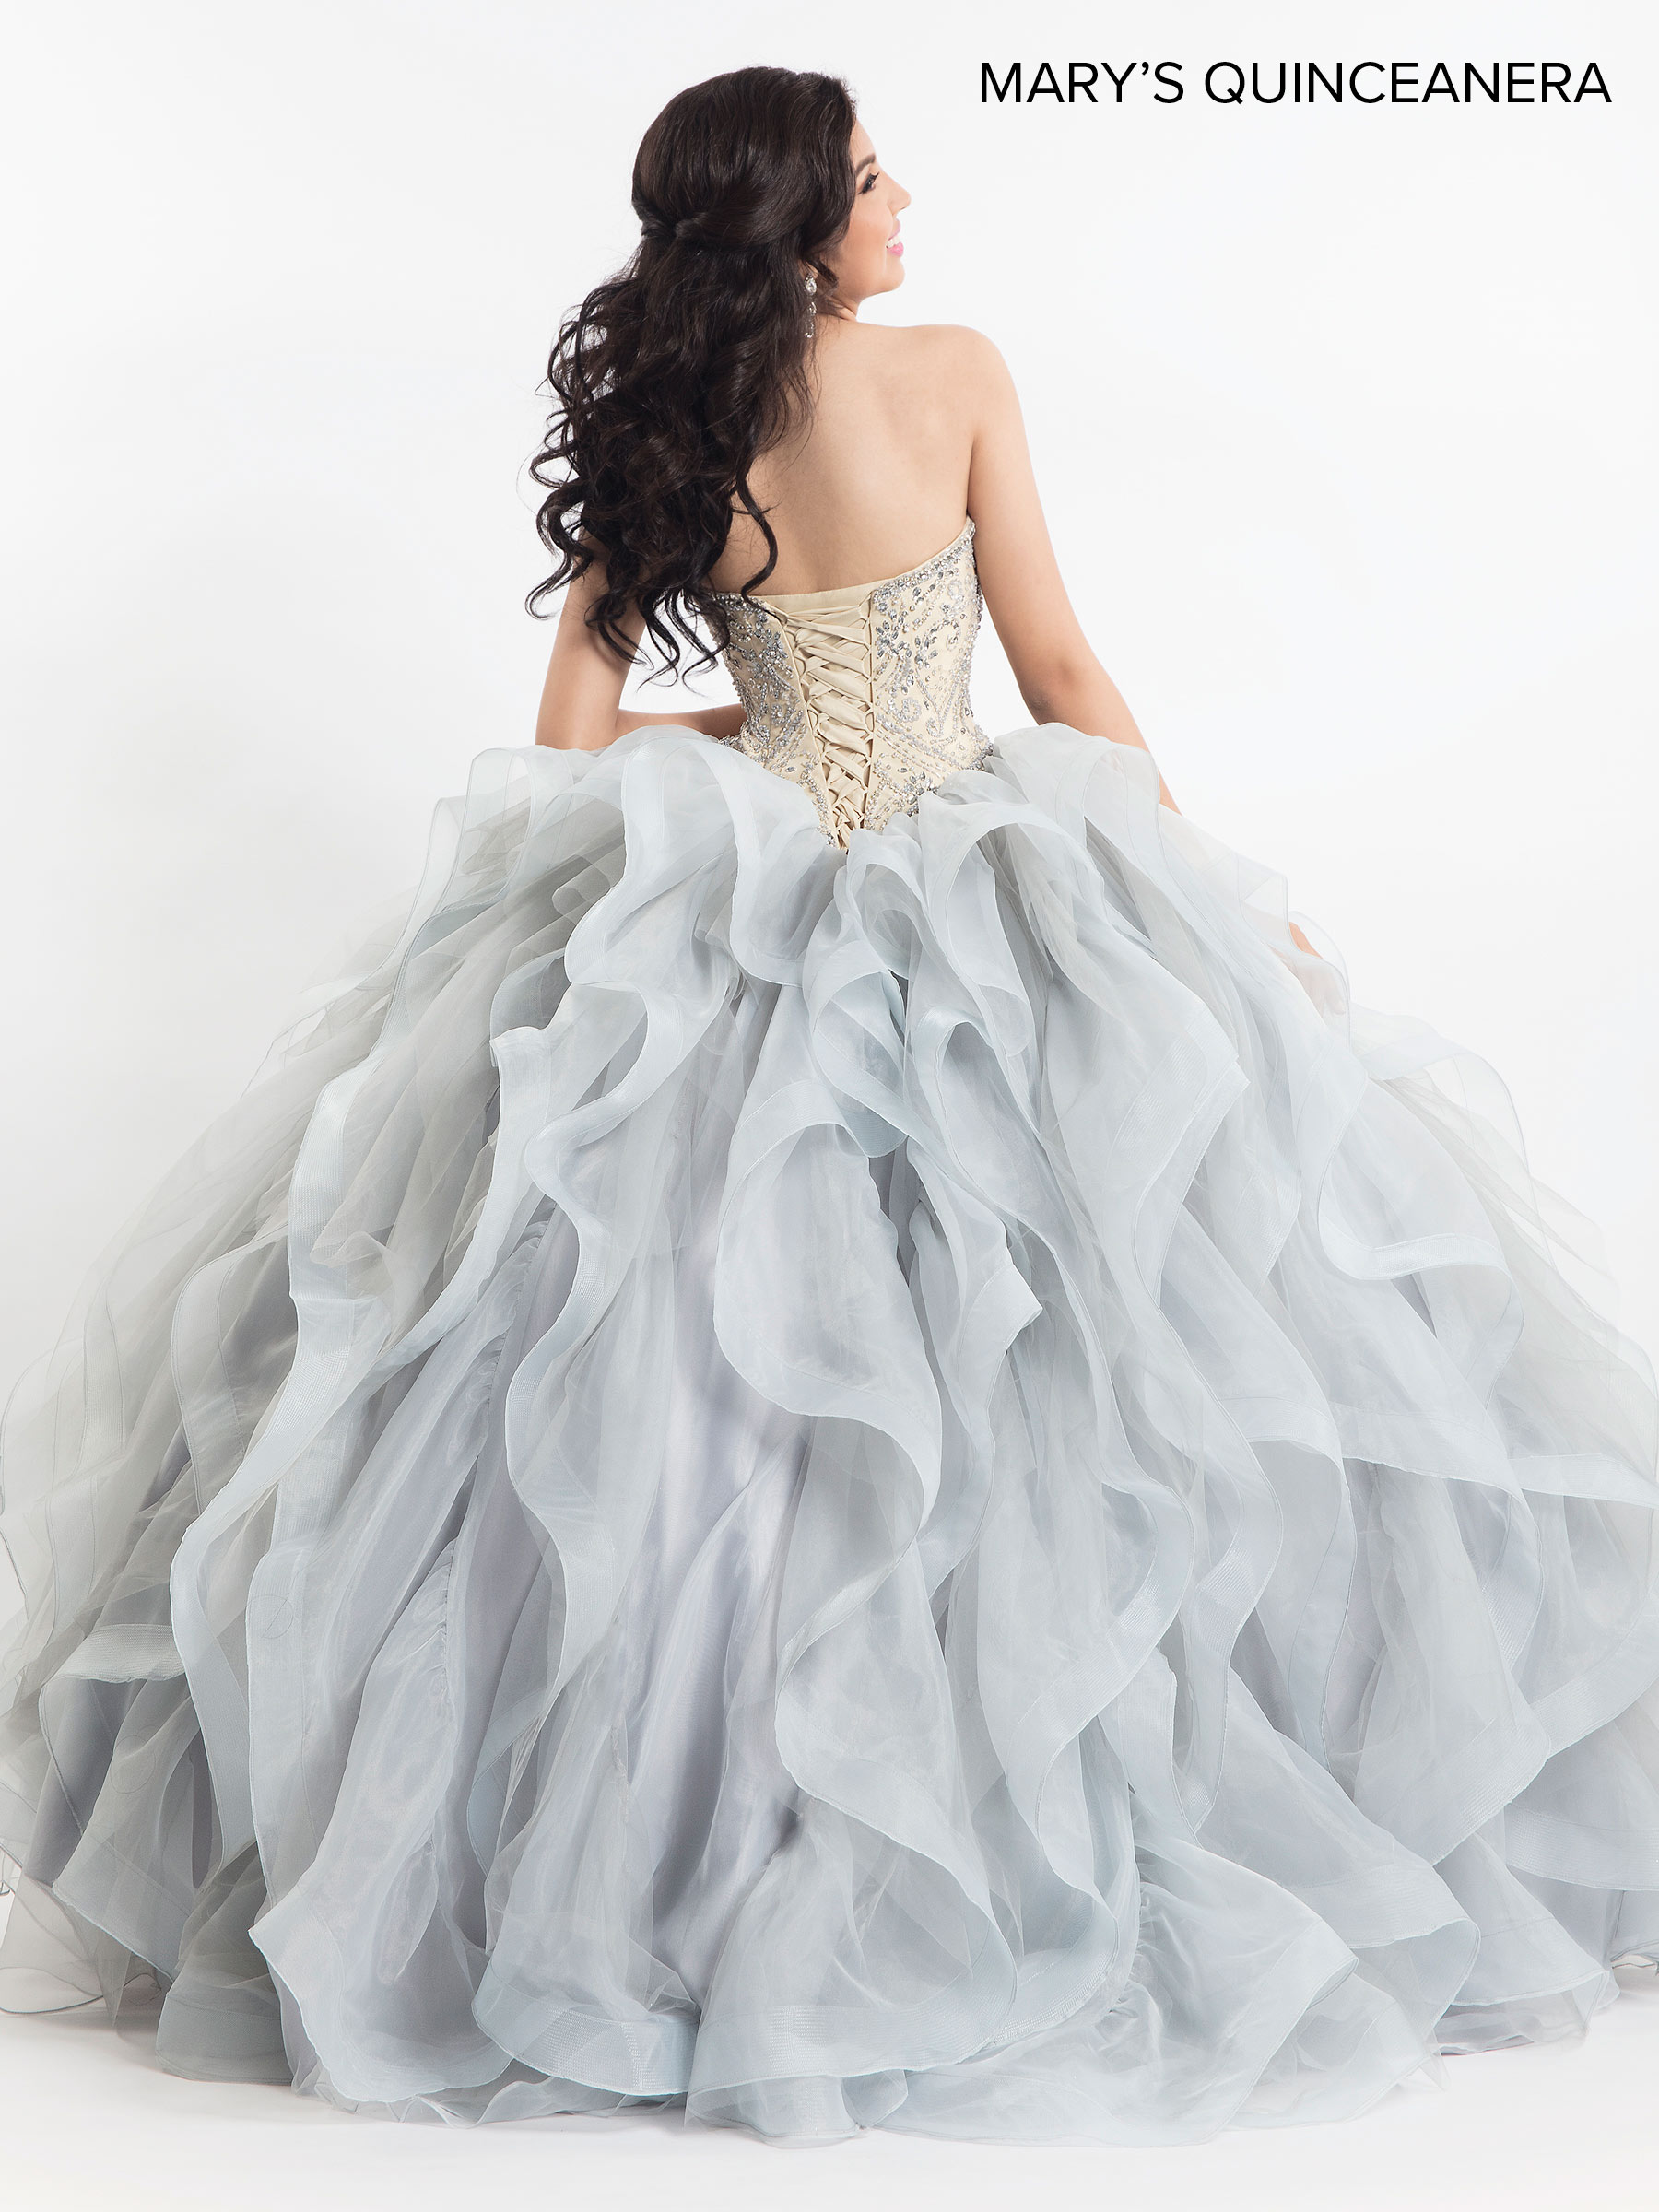 Marys Quinceanera Dresses | Mary's Quinceanera | Style - MQ2023